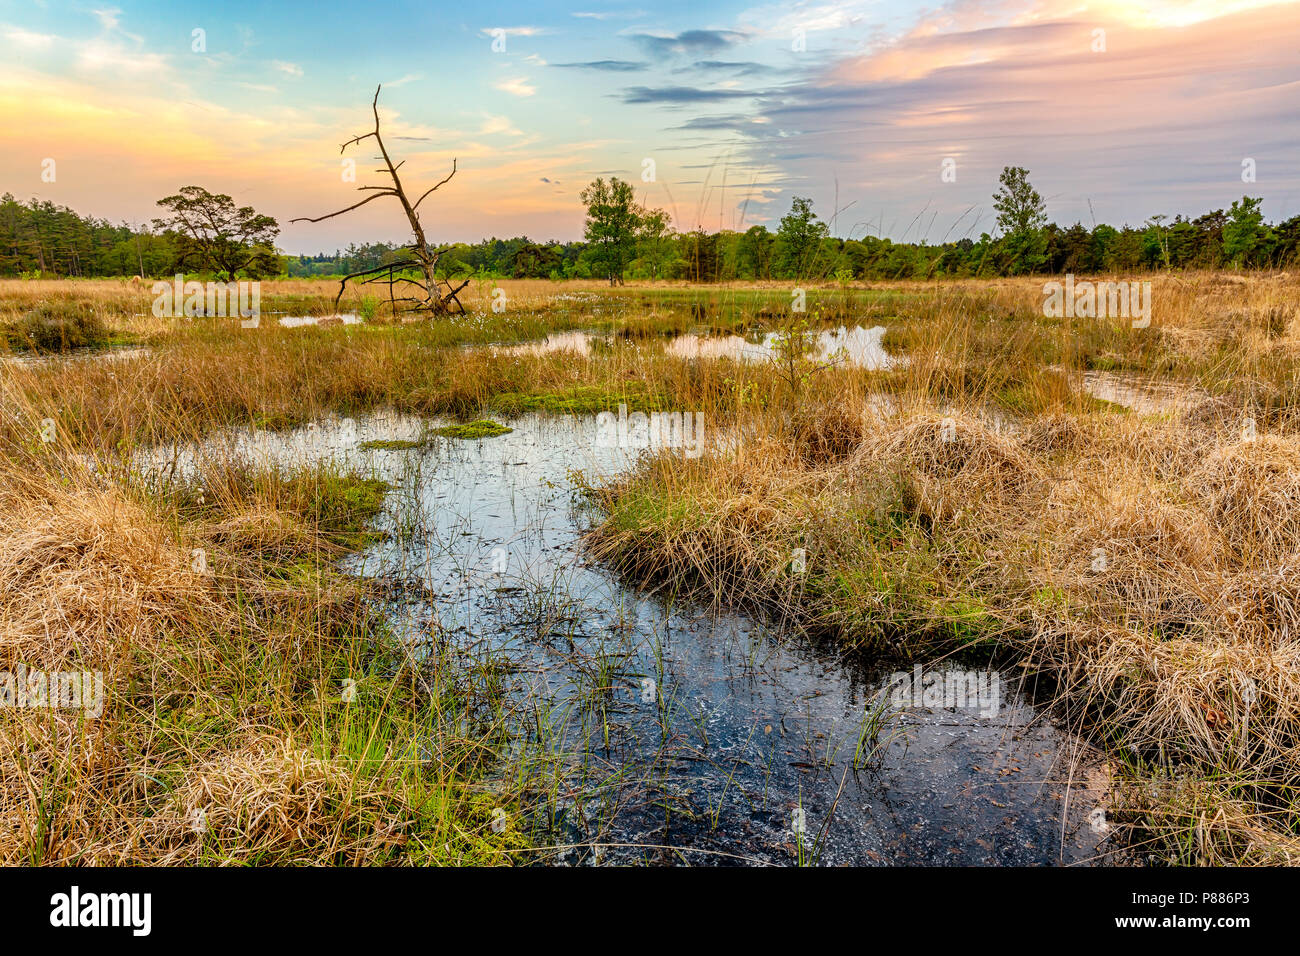 Tree with reflection in wetlands and moorland on the national park Groote Zand near Hooghalen Drenthe during sunset. - Stock Image